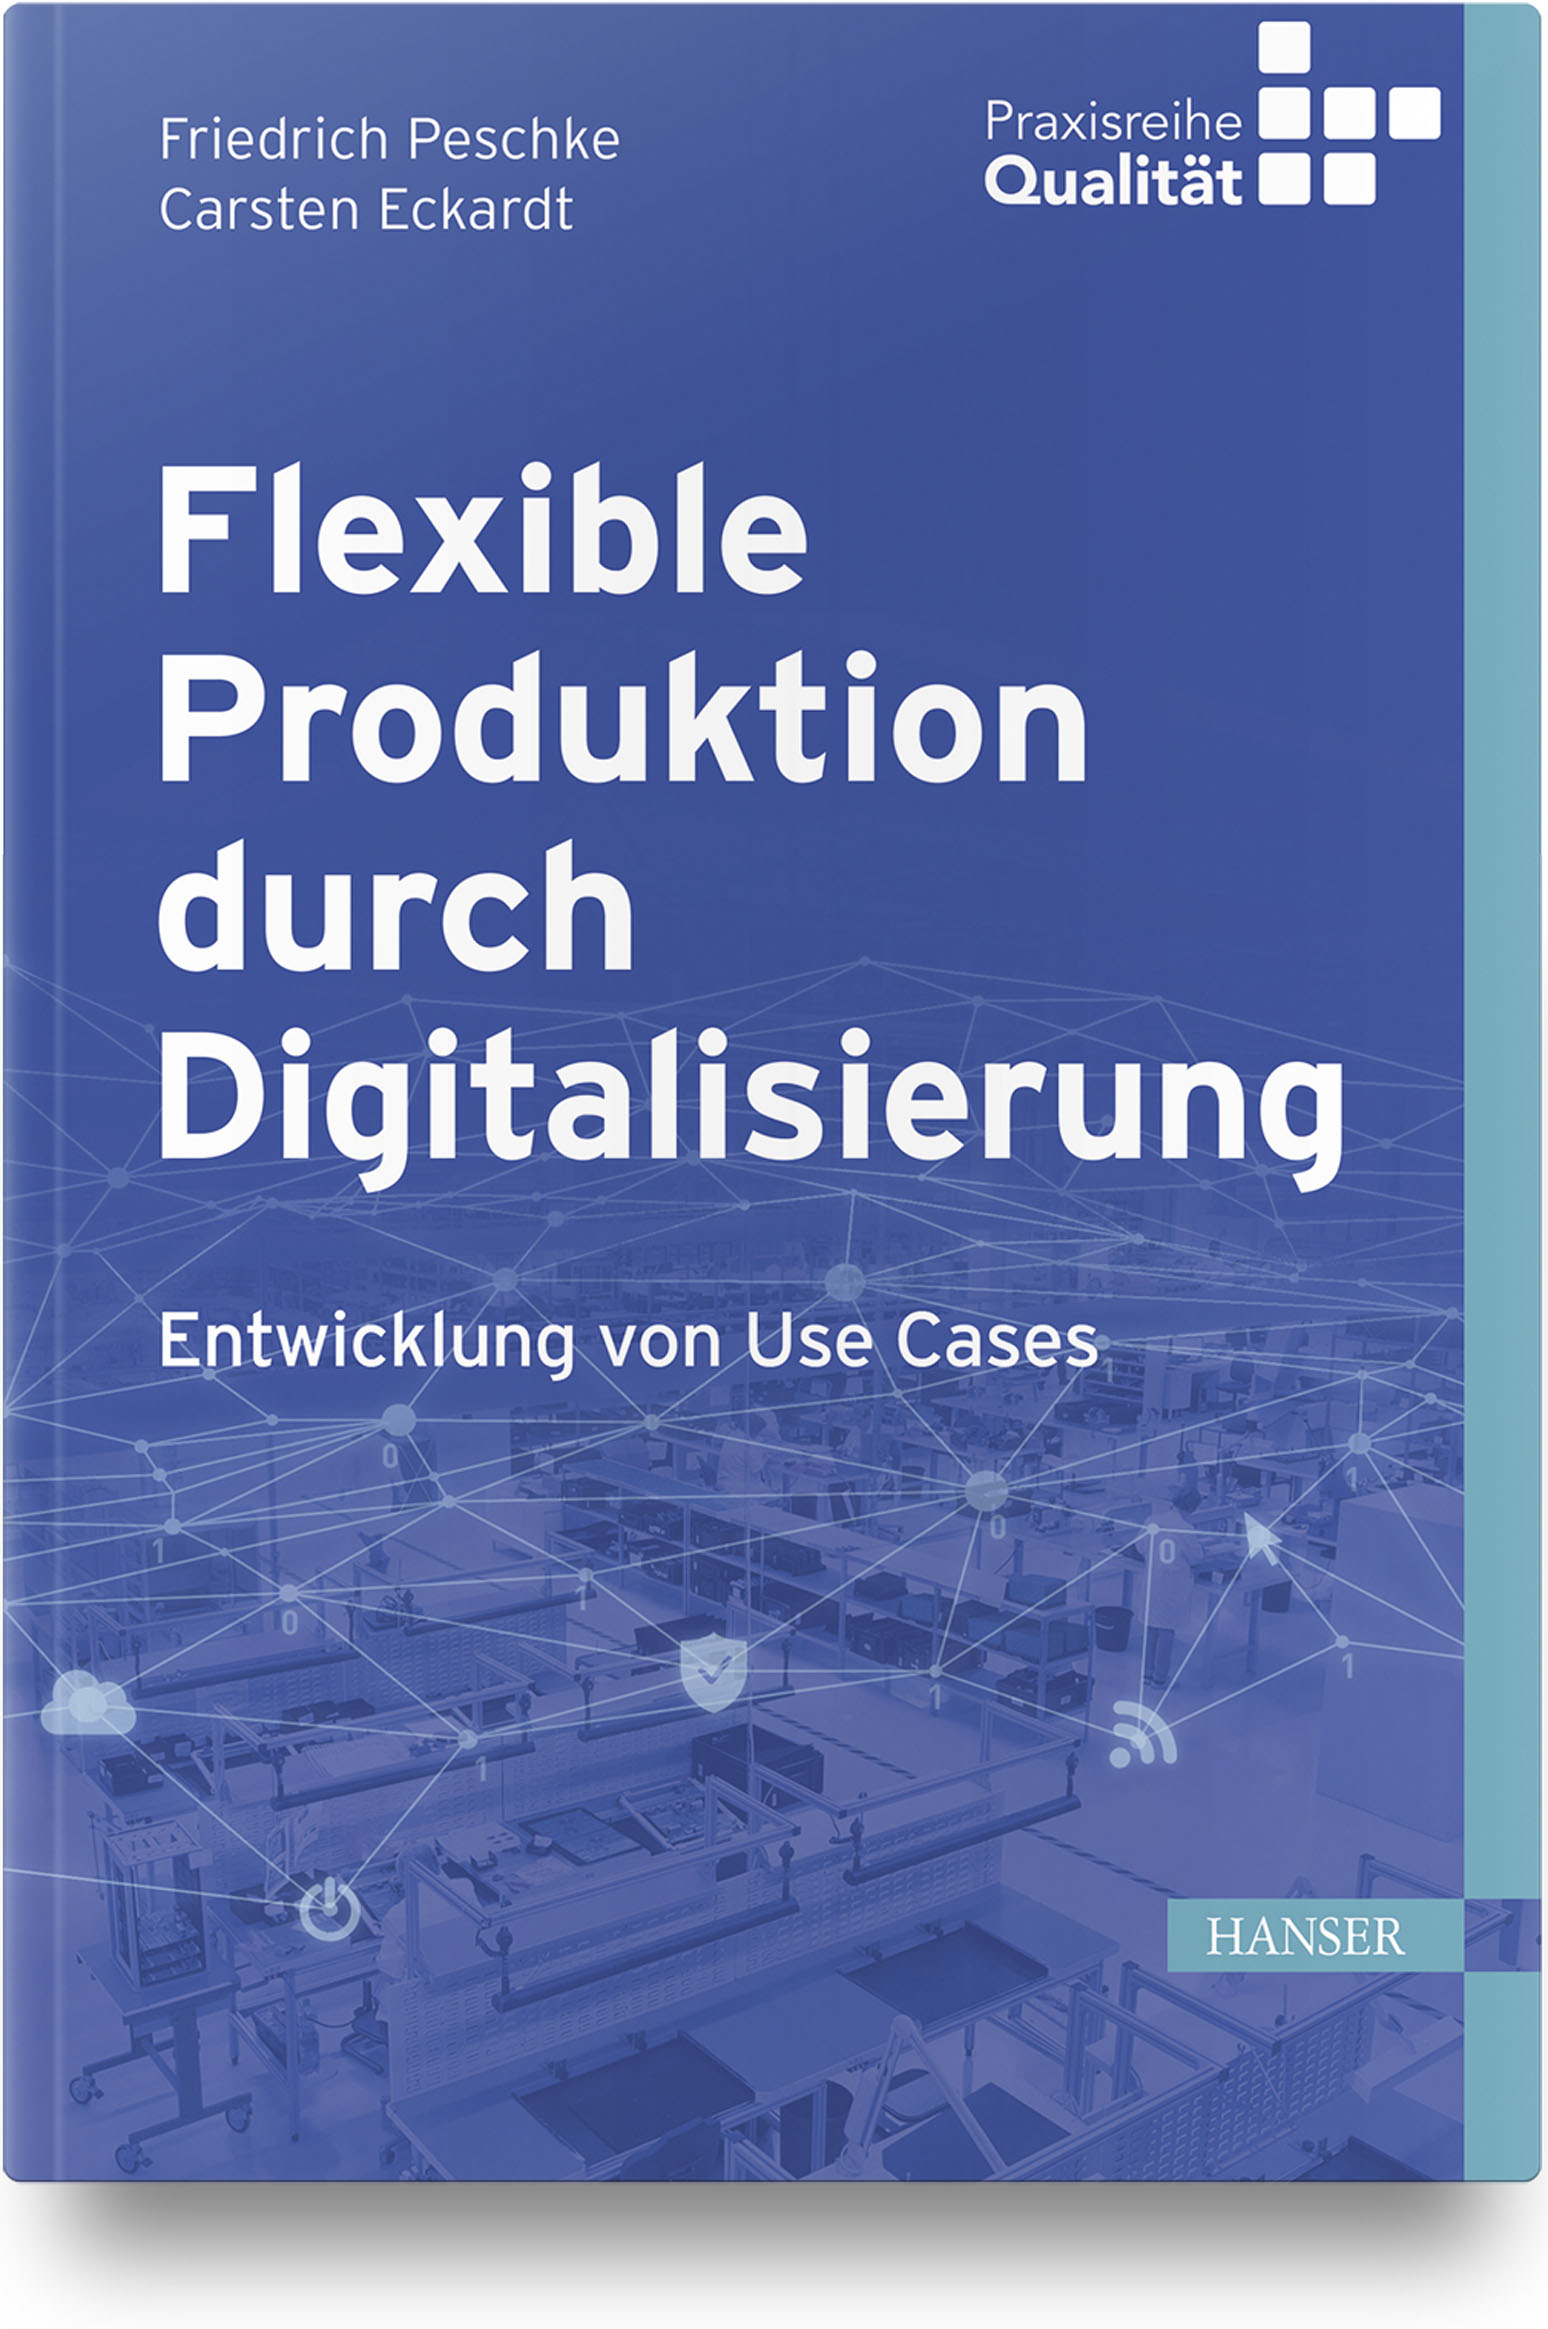 Peschke, Eckardt, Flexible Produktion durch Digitalisierung, 978-3-446-45746-1